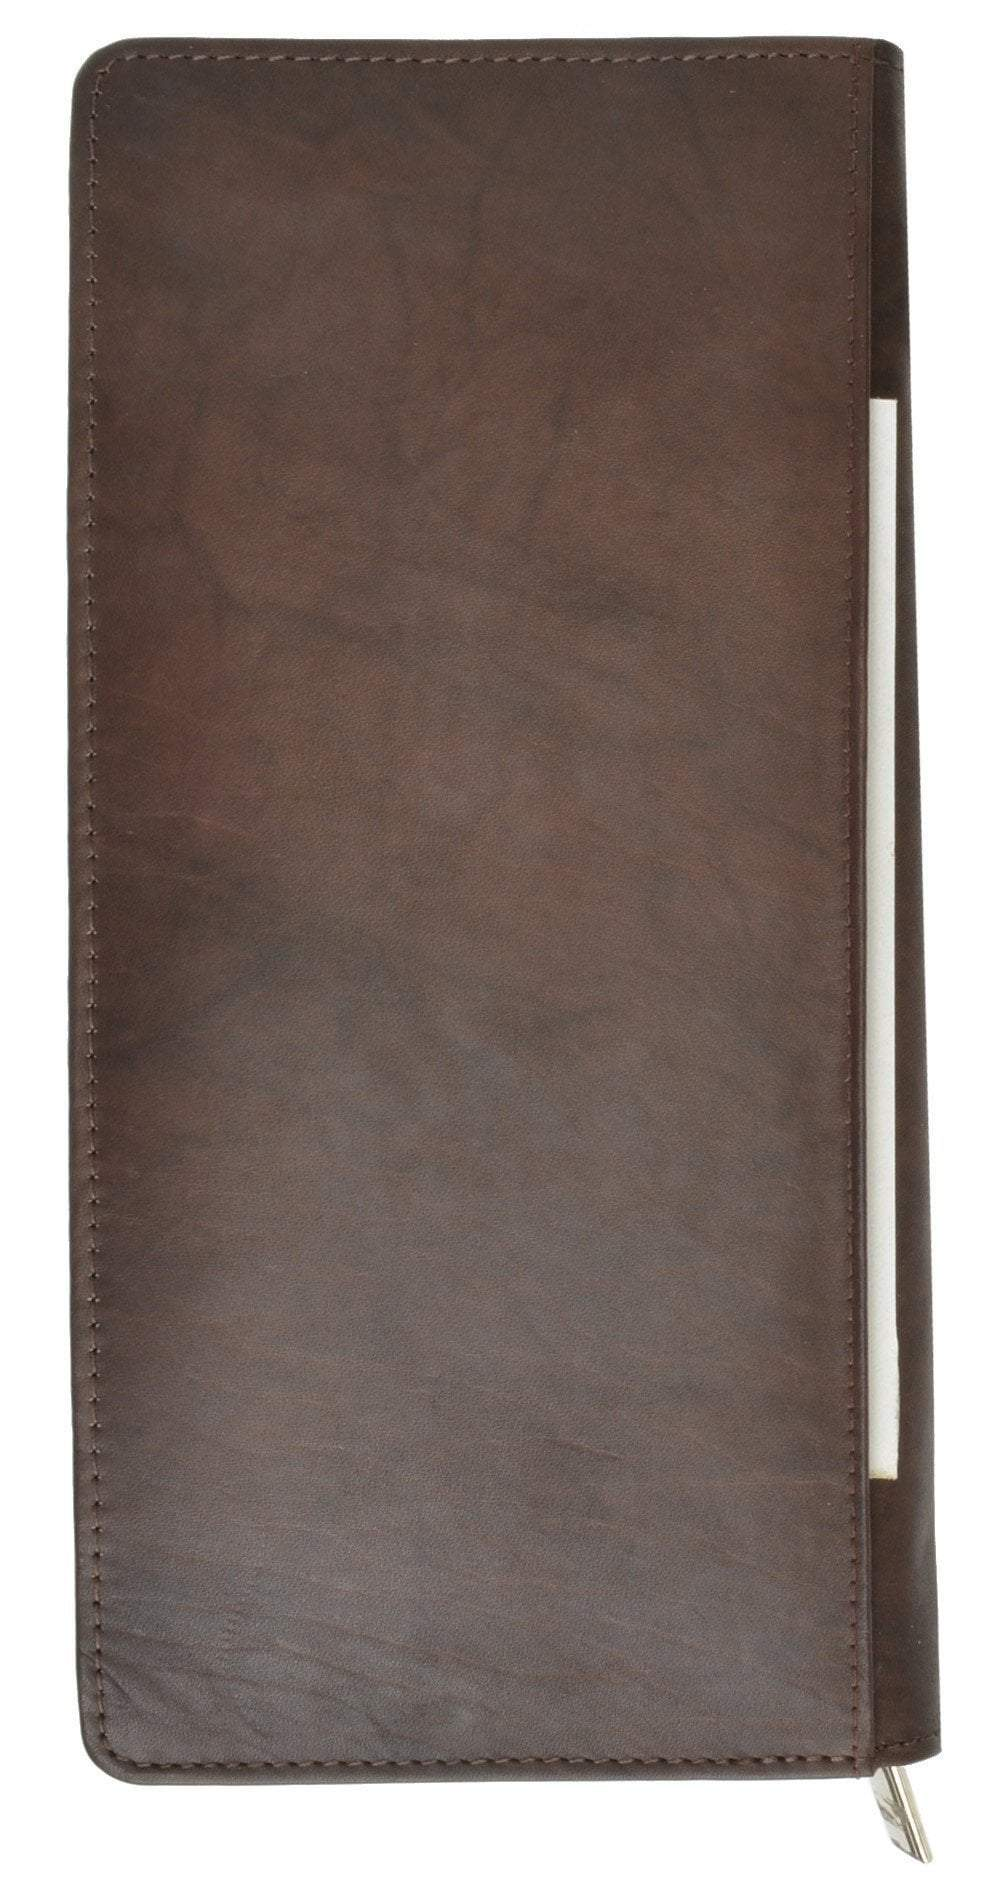 7502e9ae706b Zip Around Leather Travel Wallet with Passport and Boarding Pass Holder ...